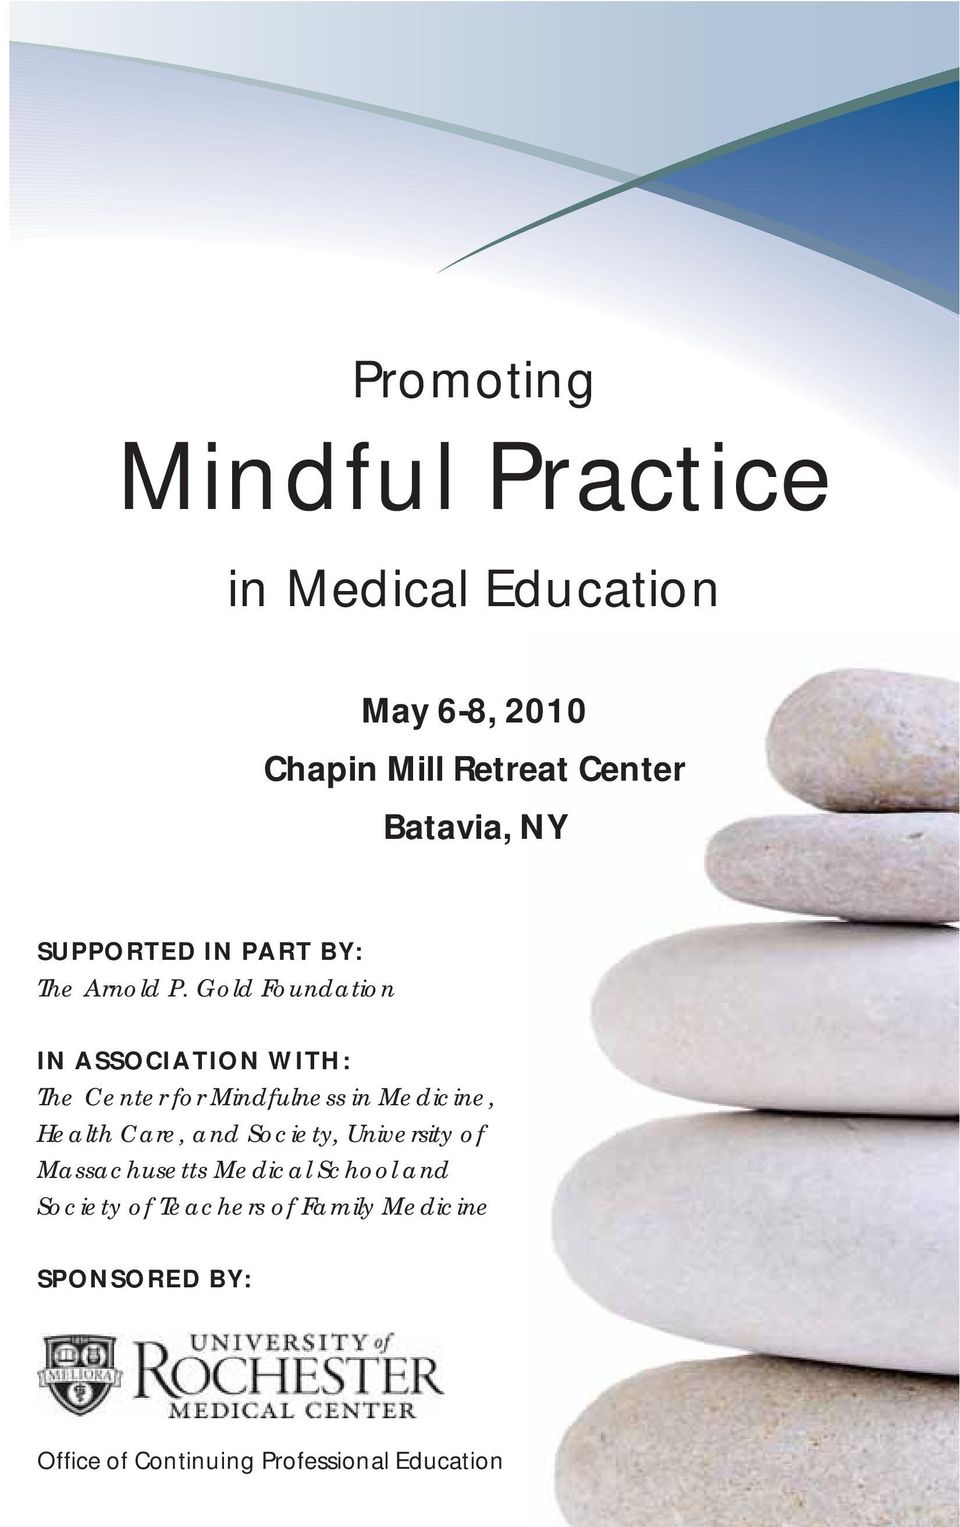 Gold Foundation IN ASSOCIATION WITH: The Center for Mindfulness in Medicine, Health Care, and